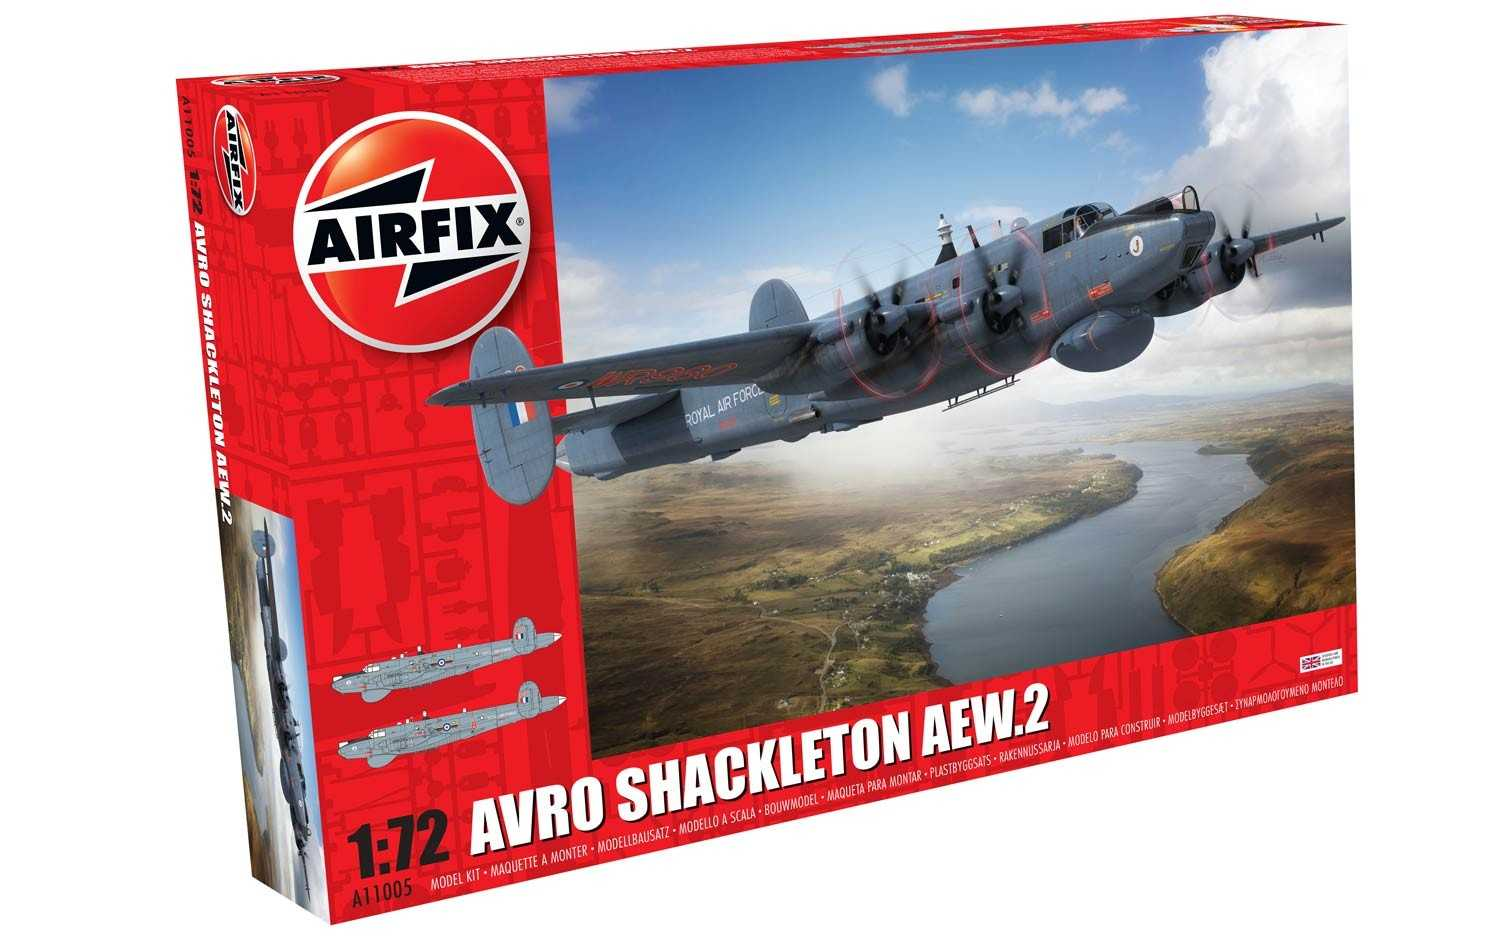 1:72 Avro Shackleton AEW.2